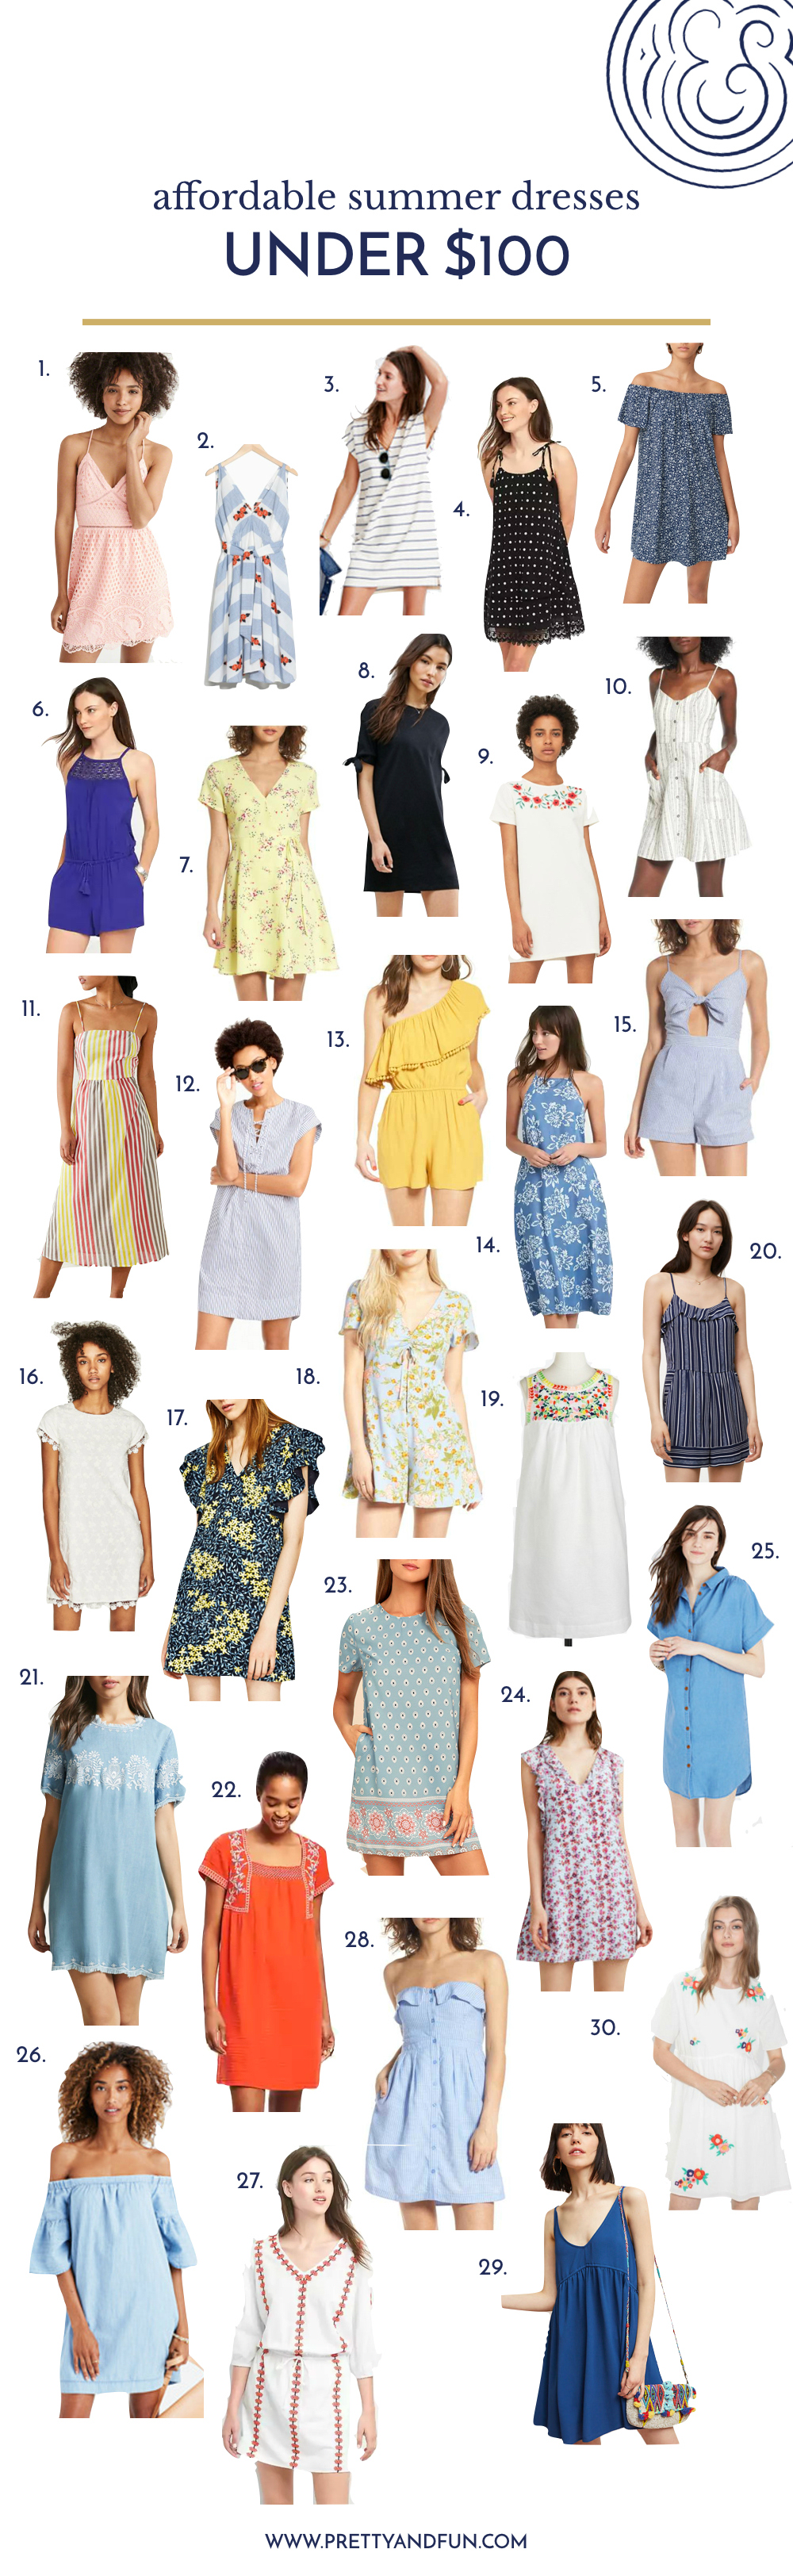 30 Affordable Summer Dresses Under $100.